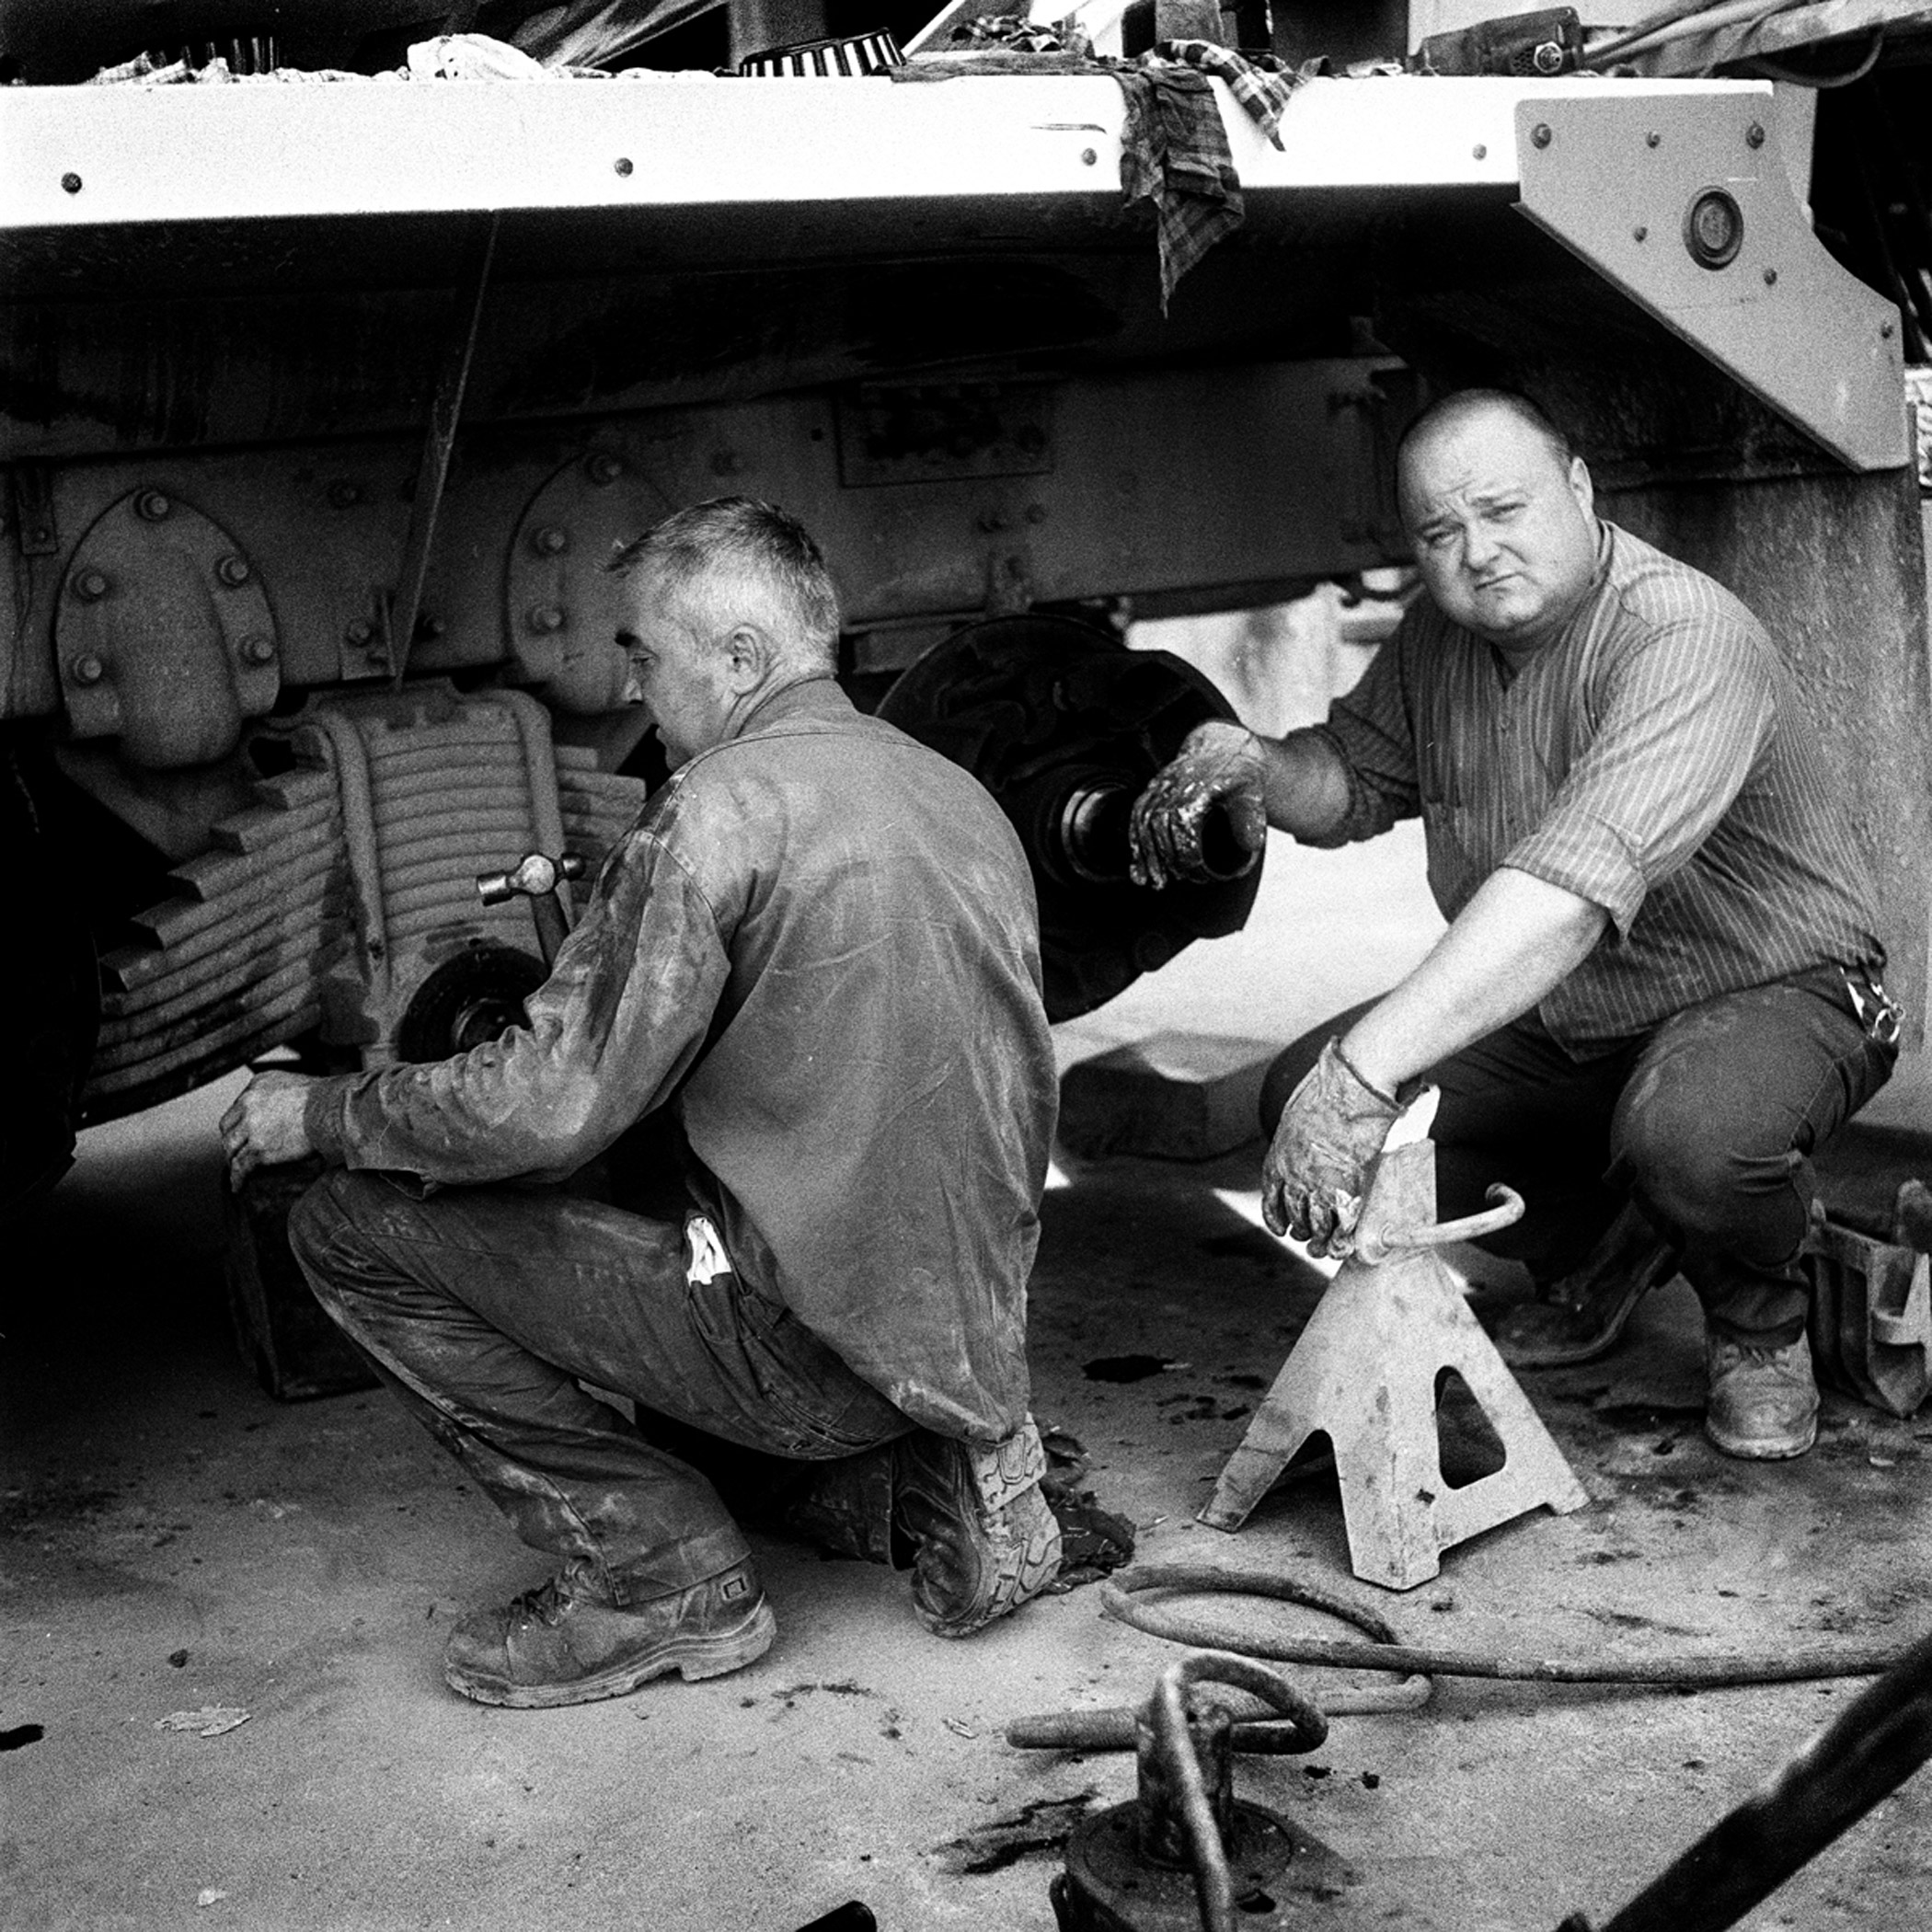 Slavic, on the suspension, and Carrol, in the support, work on one of the many Empire cement trucks that operate out of their depot on Maspeth Avenue in Williamsburg, Brooklyn, N.Y., July 2015.